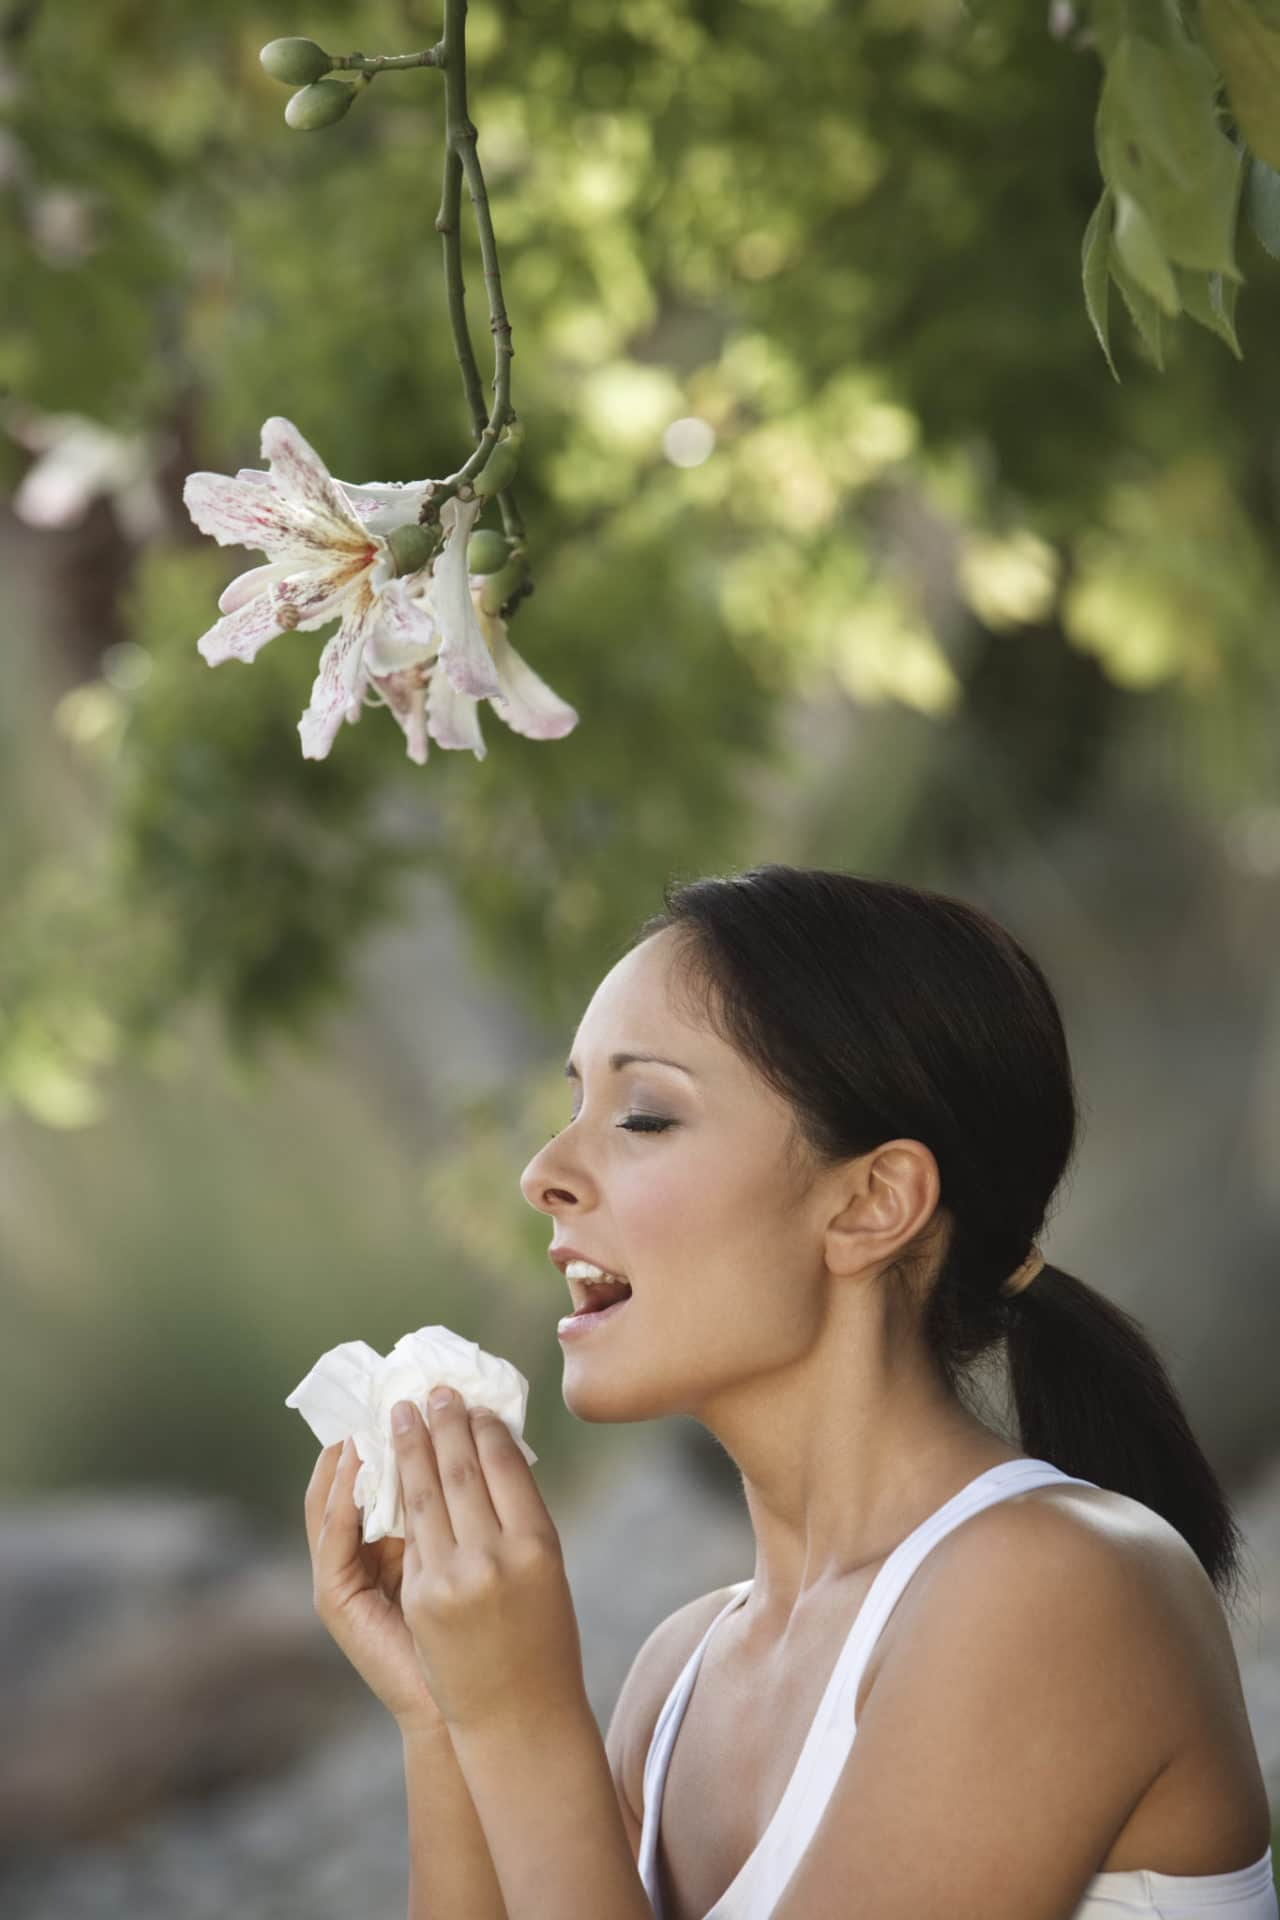 Photo of a person standing under a flowering tree and about to sneeze into a tissue